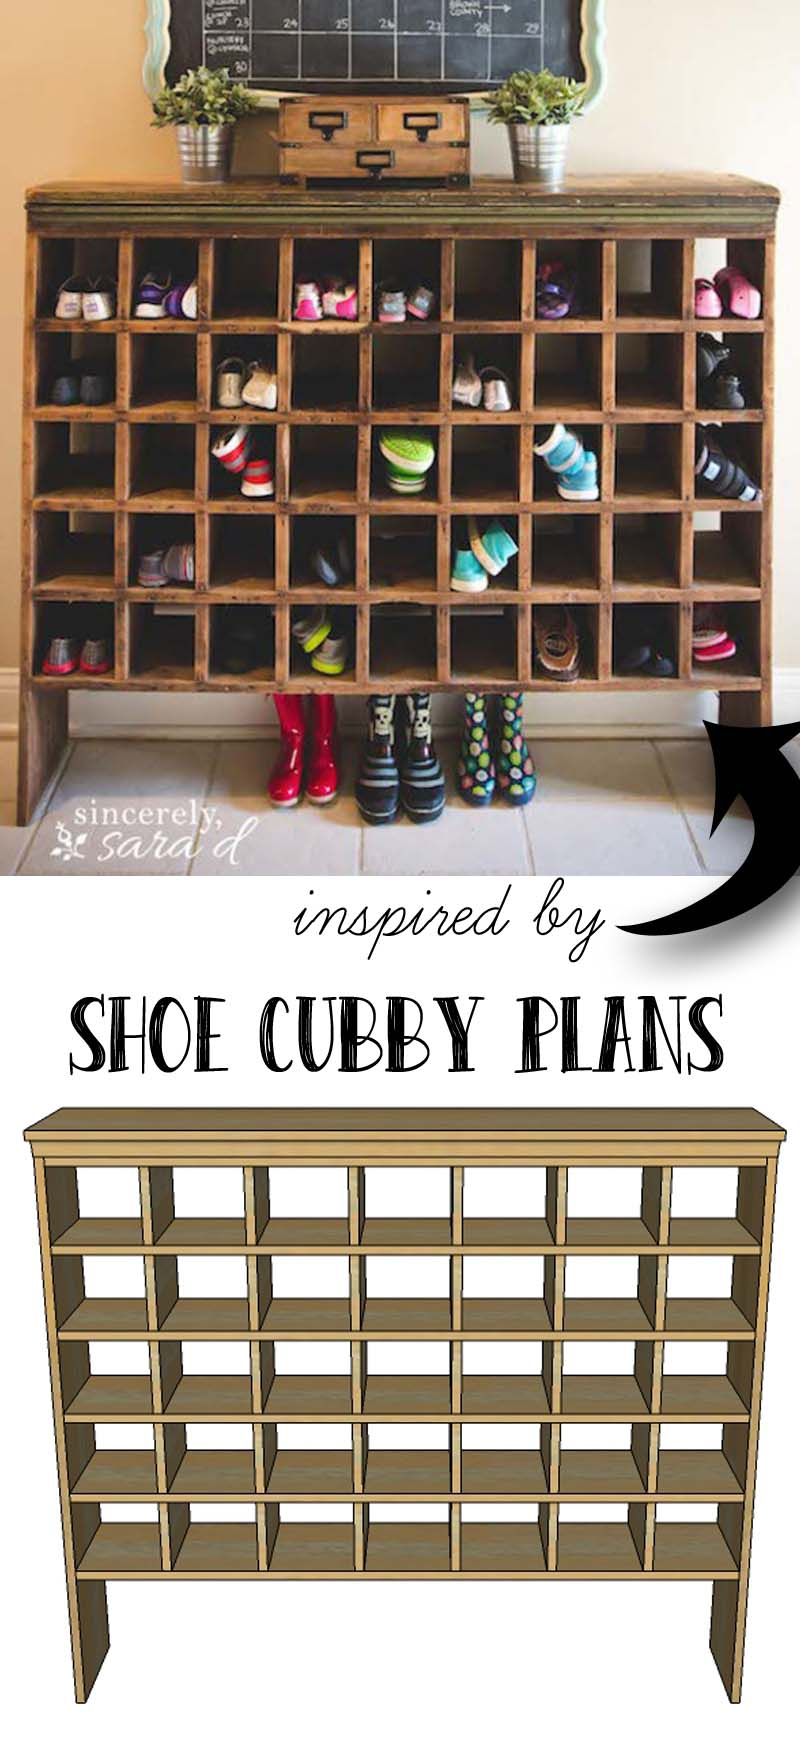 Build your own shoe cubby with remodelaholic sincerely sara d - How to build shoe storage cabinet ...